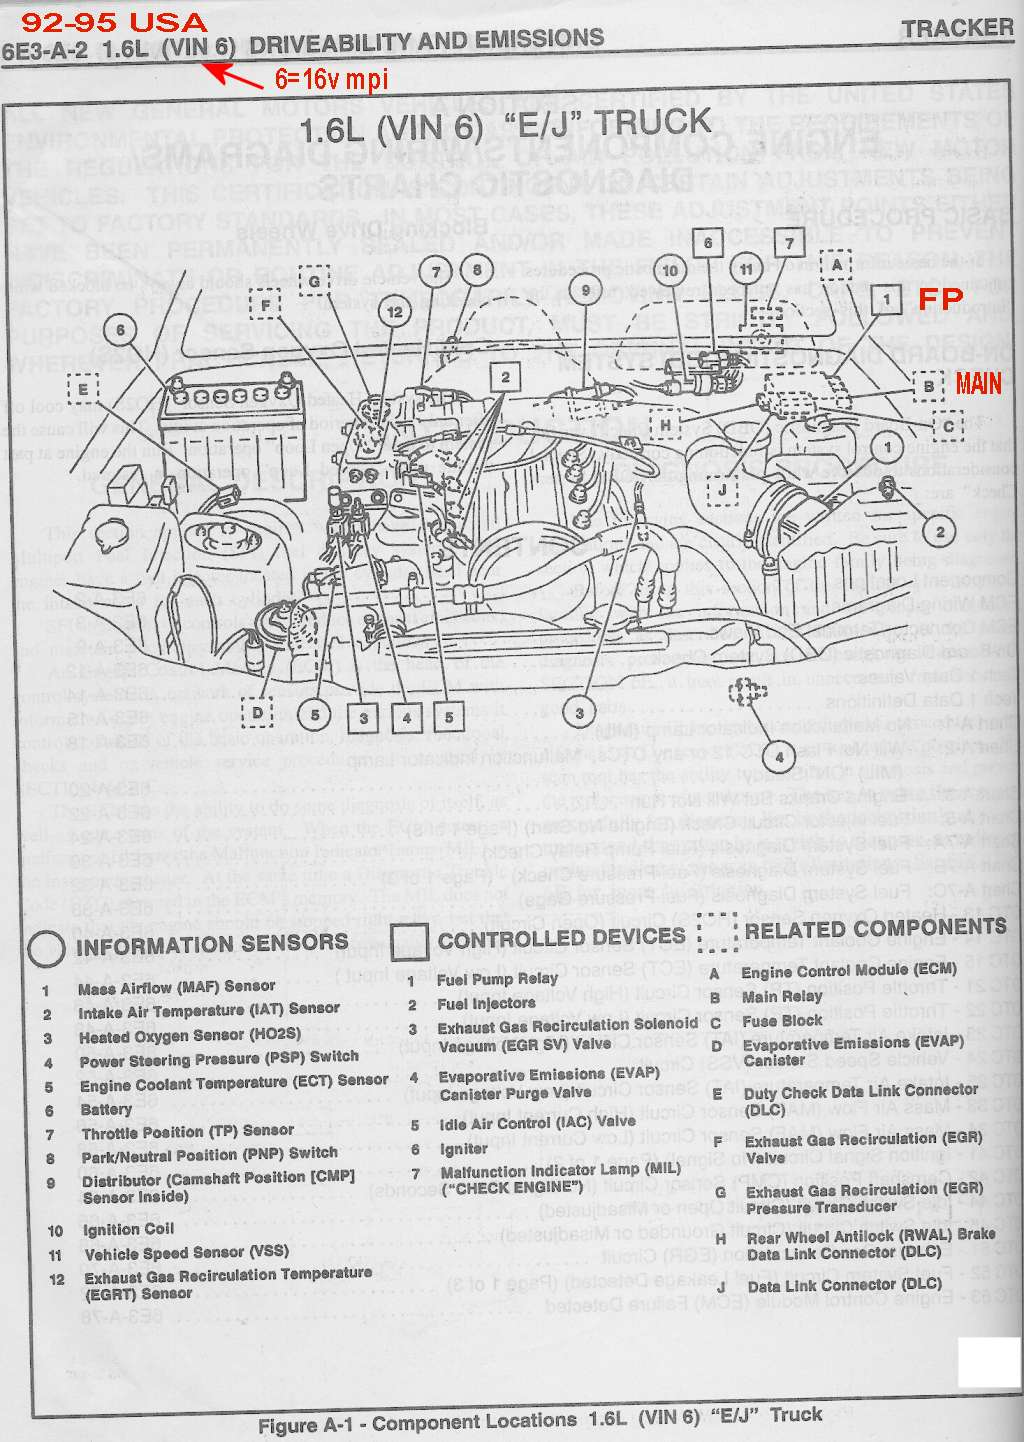 1995 Geo Tracker Wiring Schematic Library Likewise Light Switch Diagram On For Blower Fan Fukuoka Japan Engine Bay Component Locations Vin 6 Mpi Critical To Motor Running